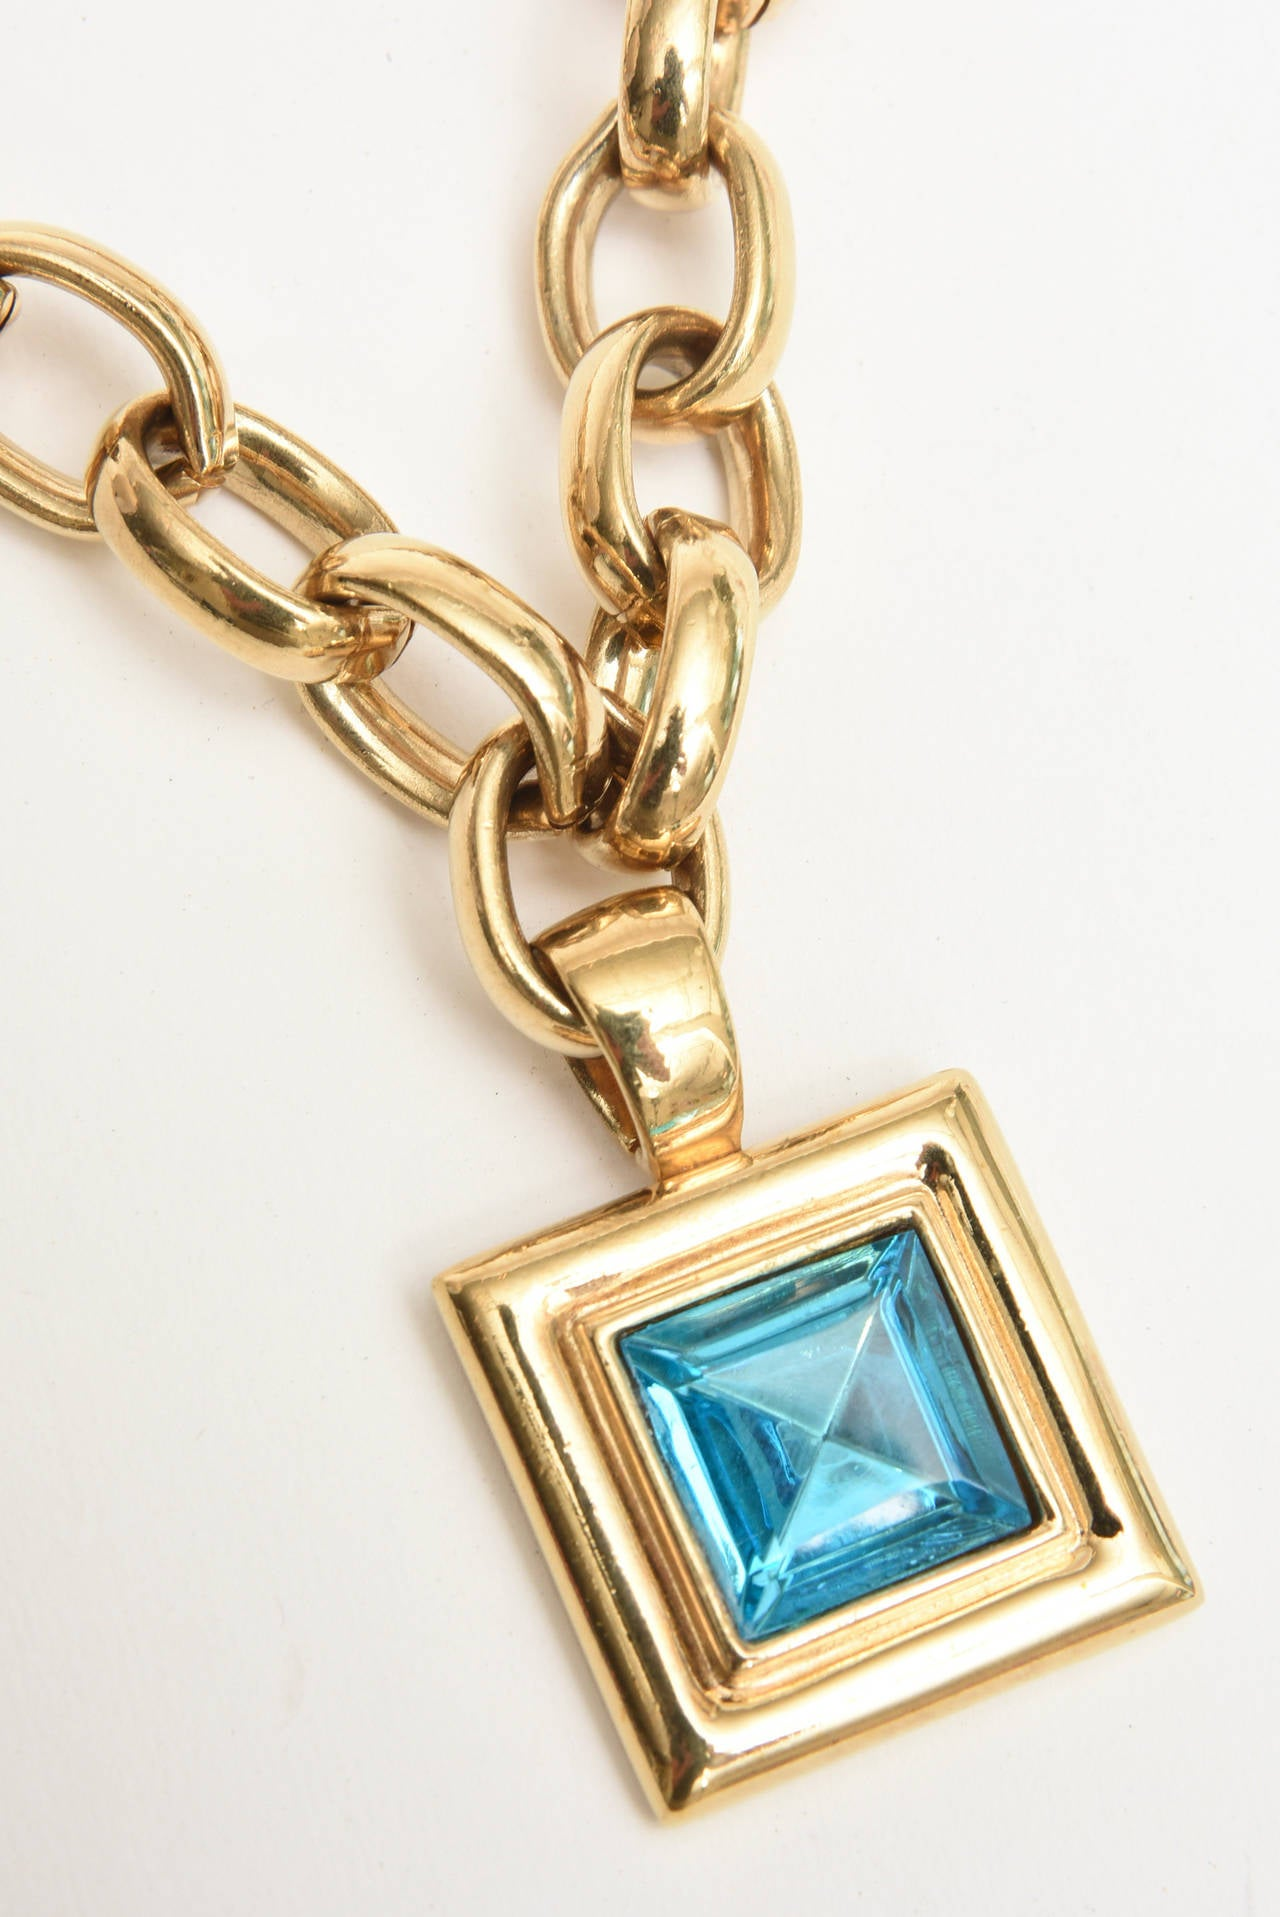 This substantial and heavy brass and glass gold link french signed